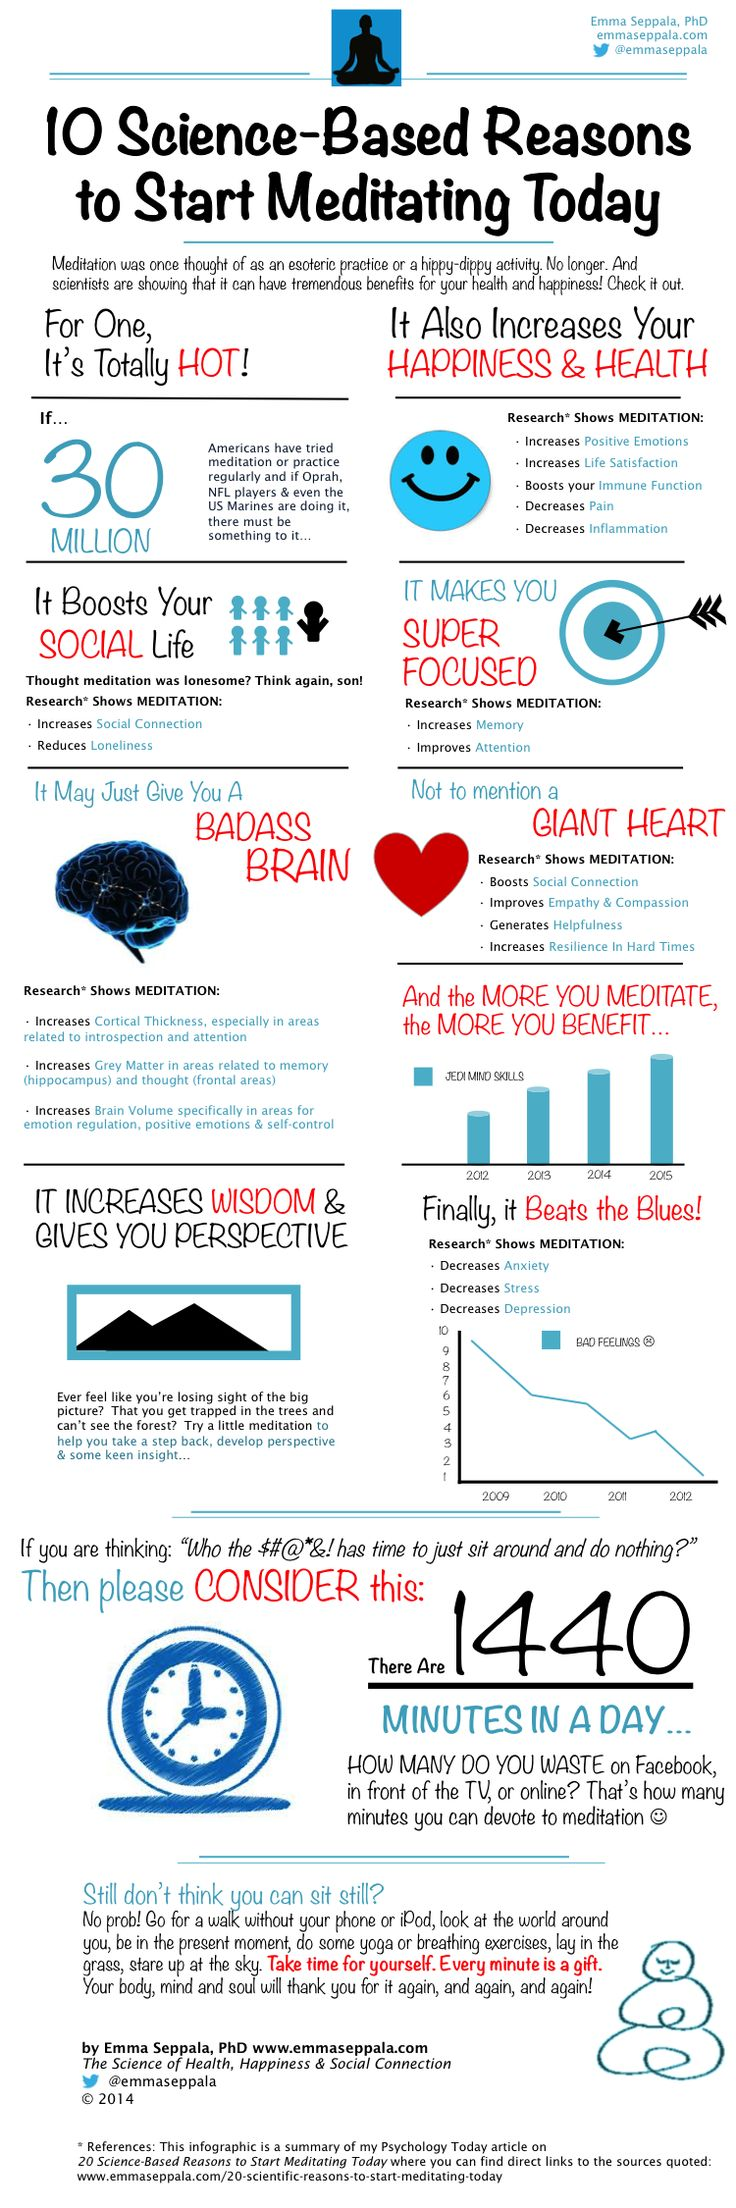 10 Science-Based Reasons To Start Meditating Today #Infographic #Meditation #Health